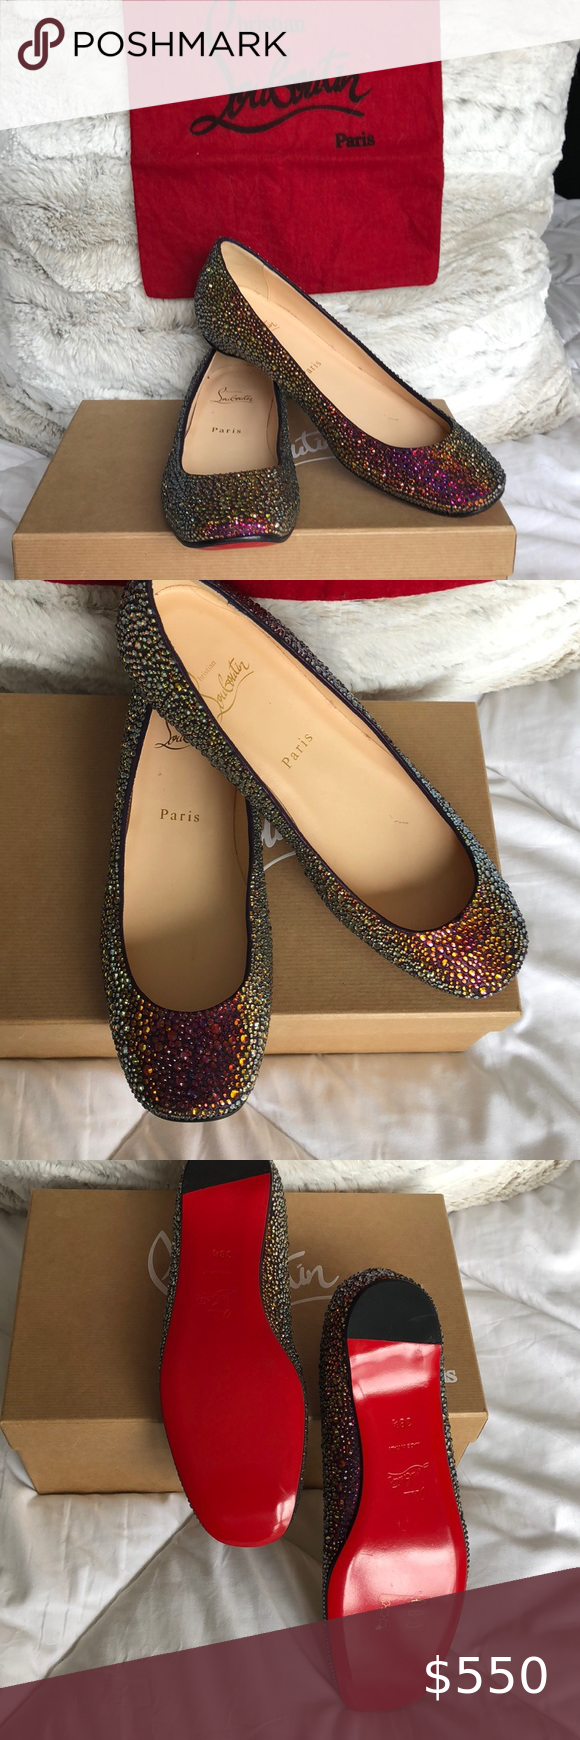 724b64024d08 CHRISTIAN LOUBOUTIN CRYSTAL FLATS 38.5 RARE NEVER WORN NEW WITH BOX AND  DUST BAG SIMPLY GORGEOUS 38.5 Christian Louboutin Shoes Flats   Loafers